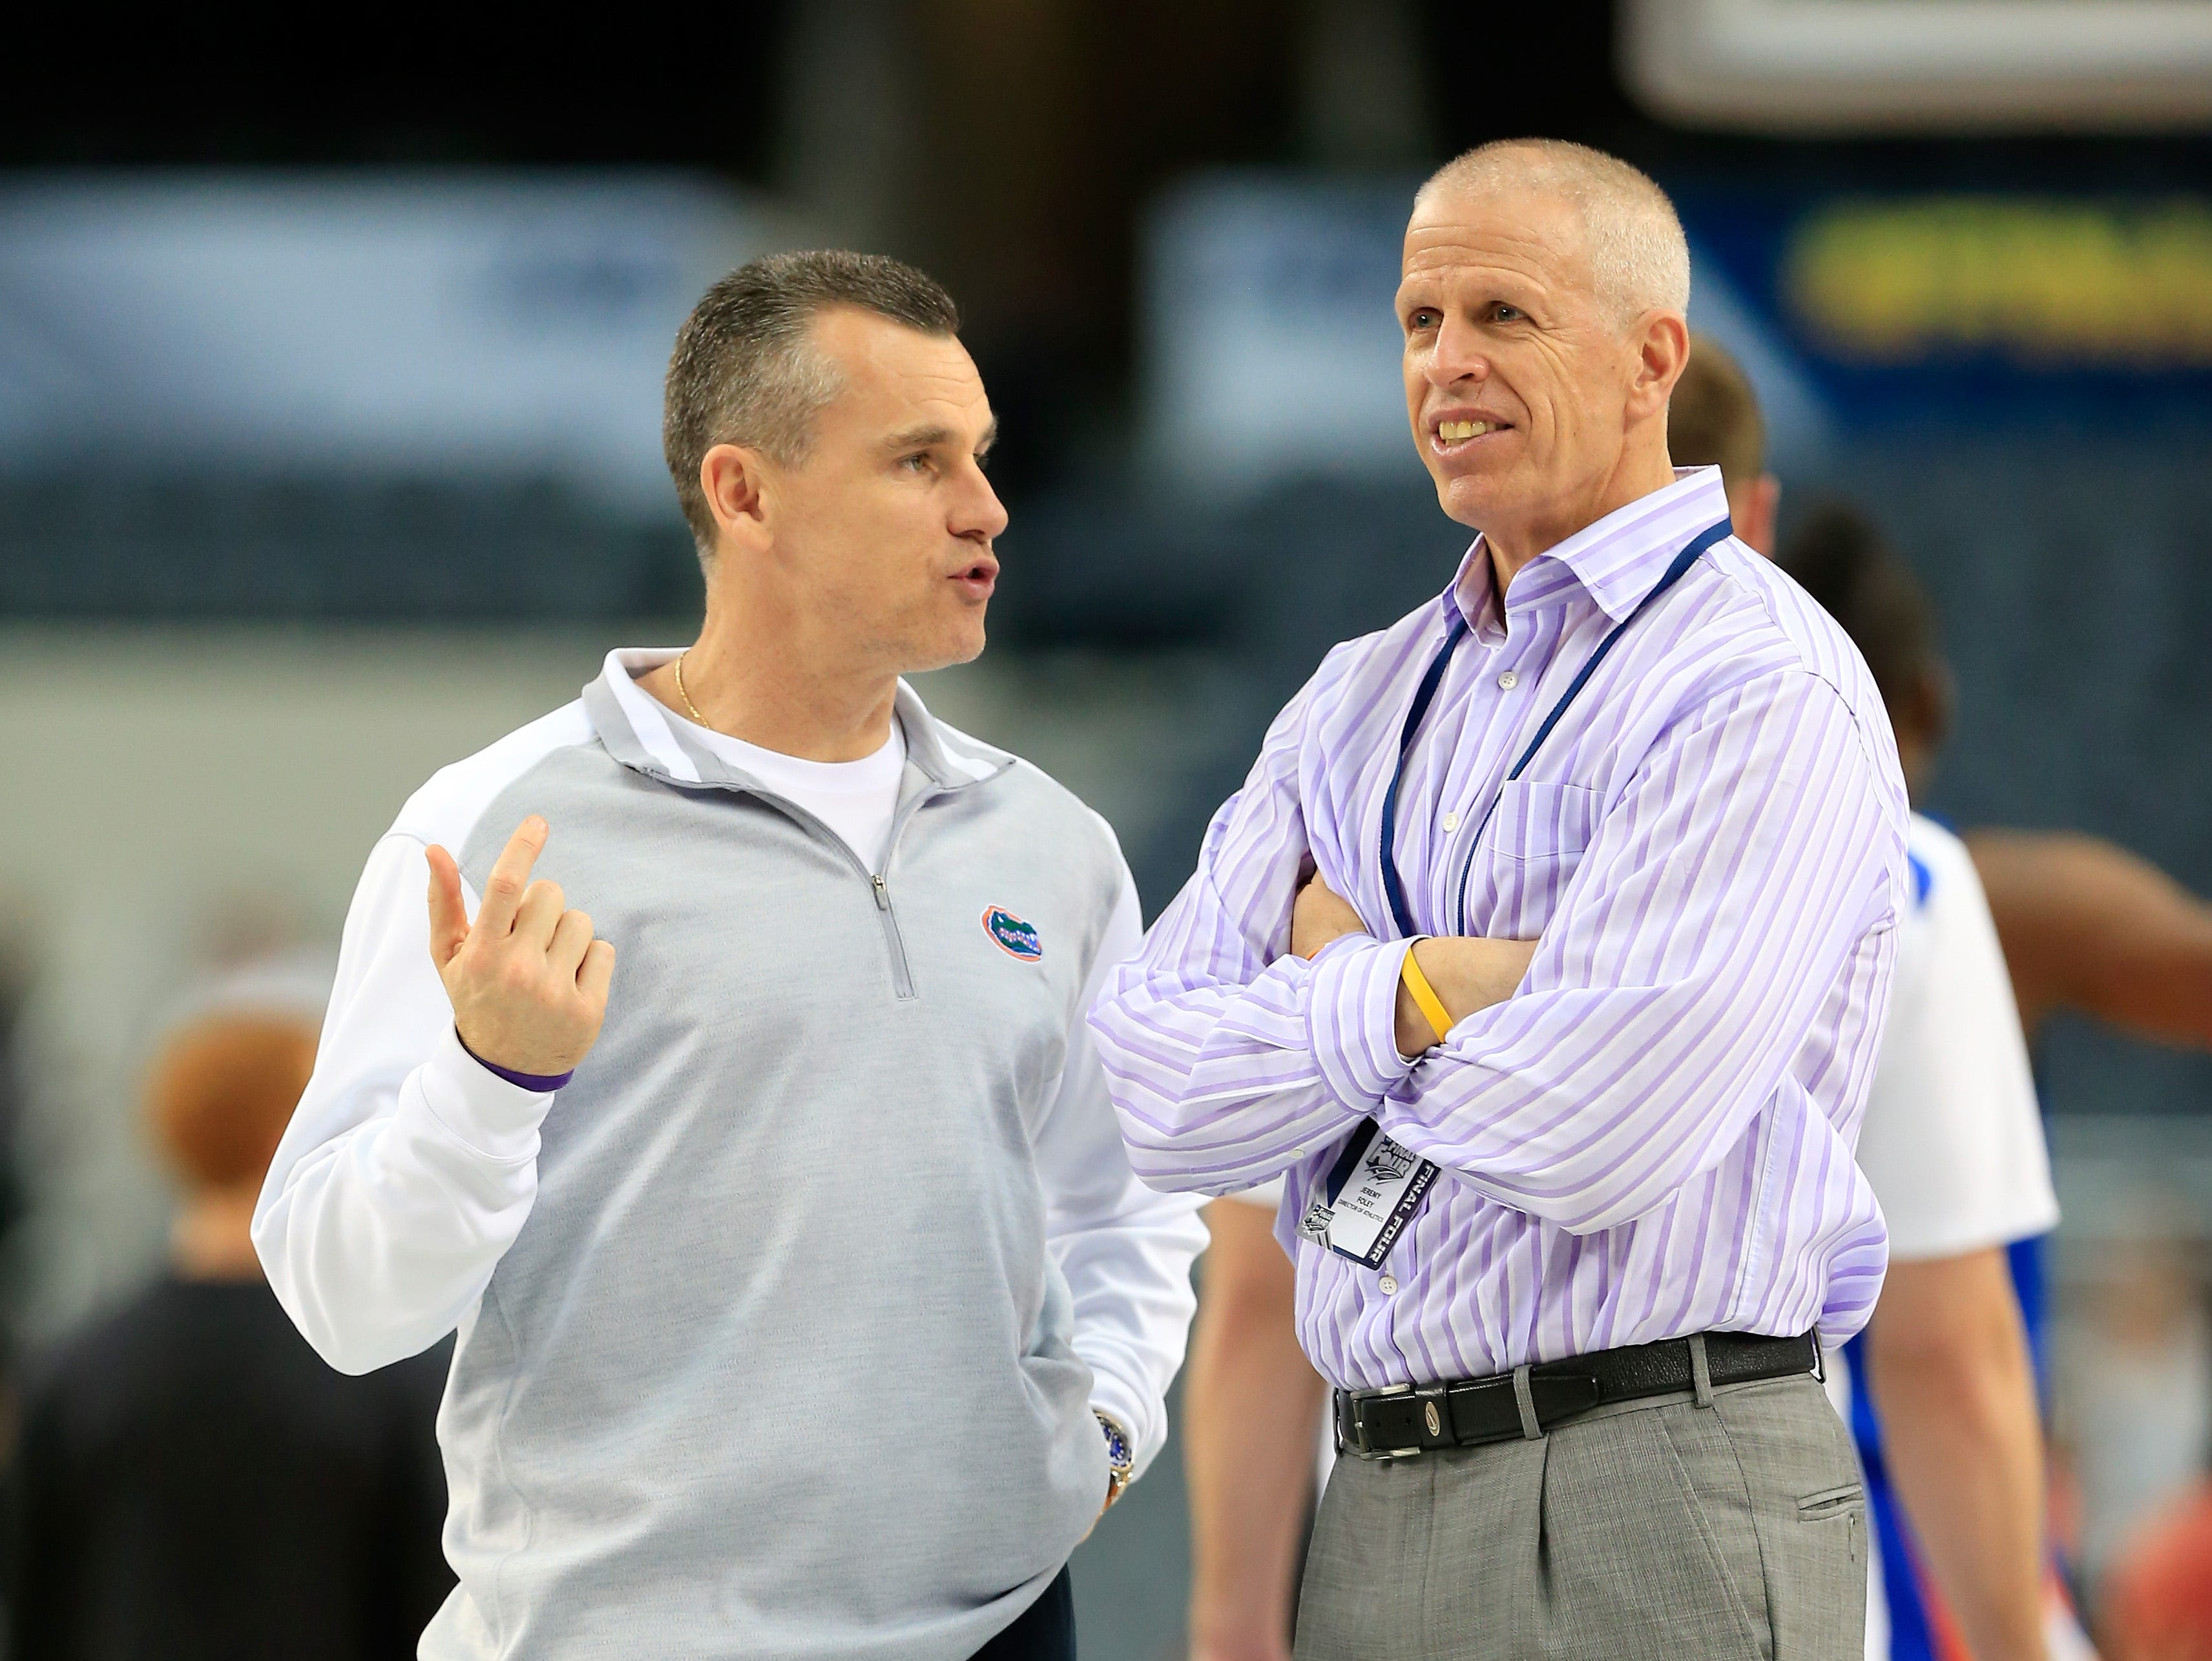 Head coach Billy Donovan of the Florida Gators talks with athletic director Jeremy Foley.